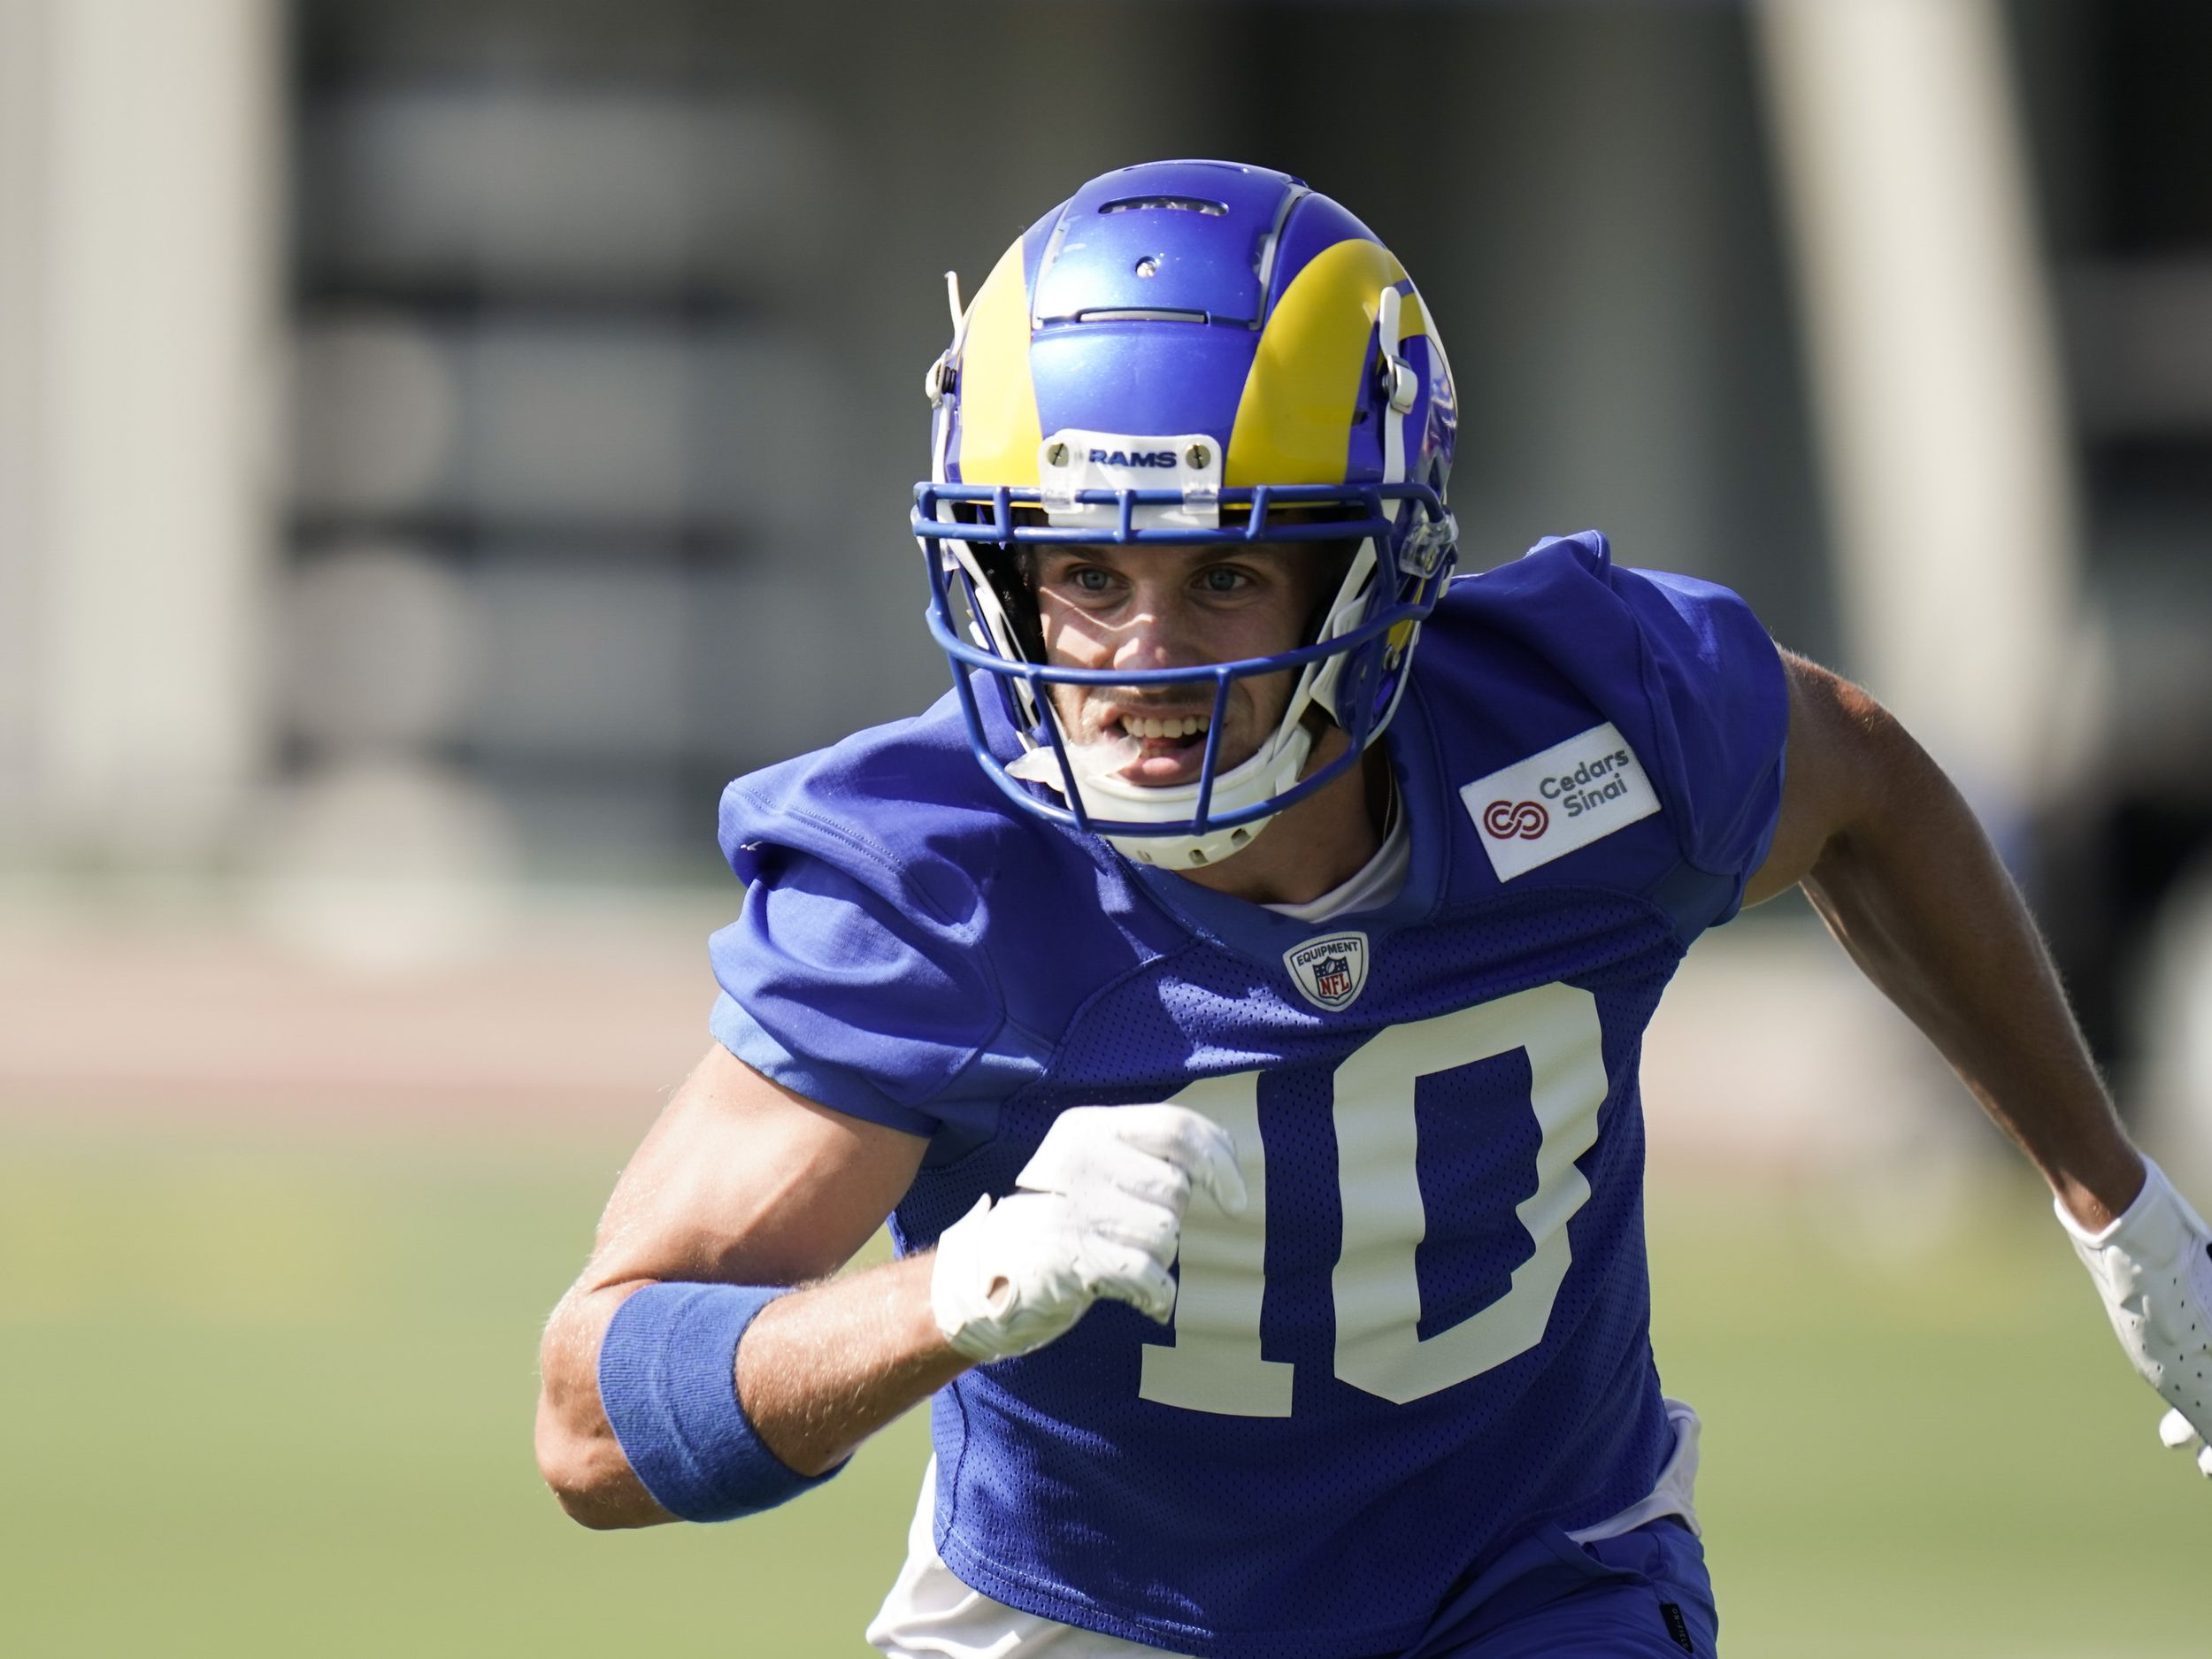 Former Ewu Wr Cooper Kupp Reaches 3 Year Extension With La Rams The Spokesman Review